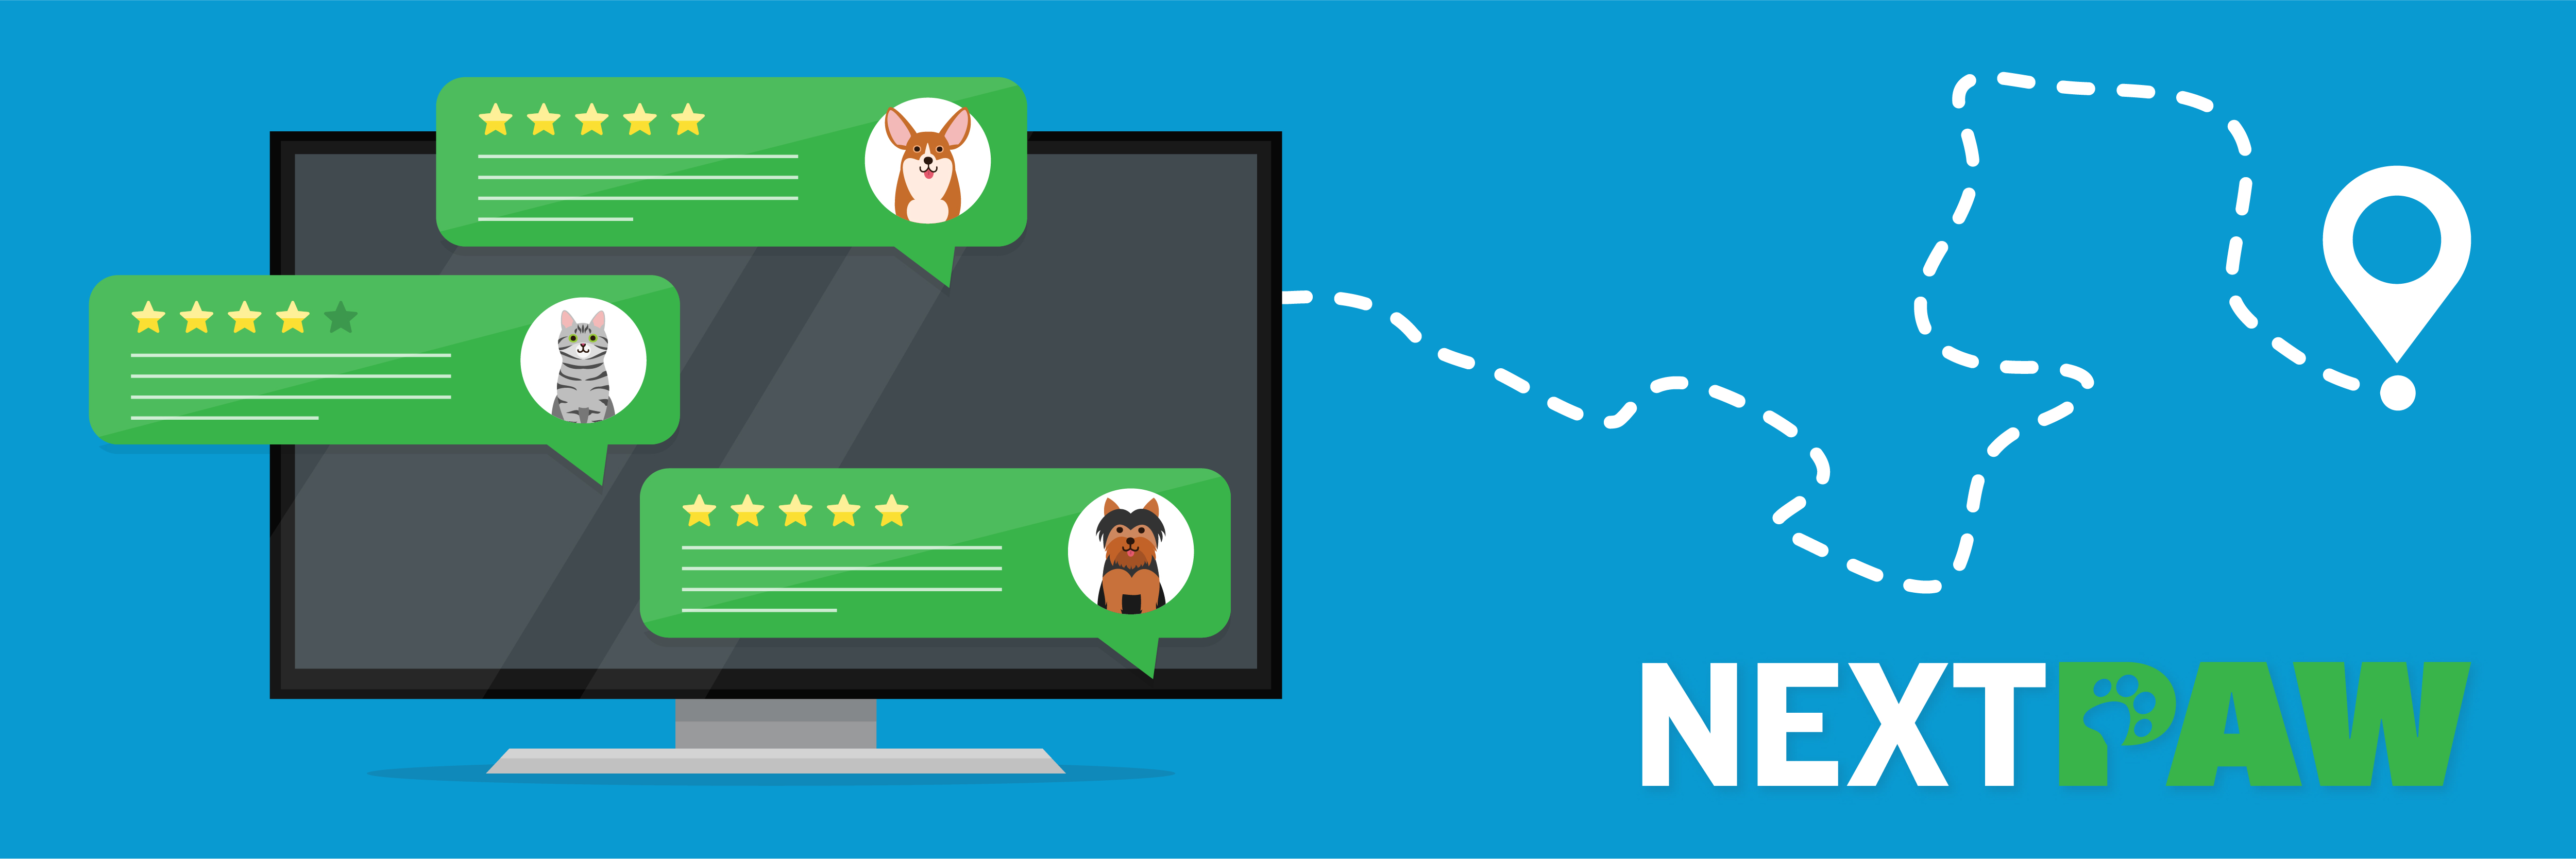 5 Ways Online Reviews Drive Customers to Pet Businesses